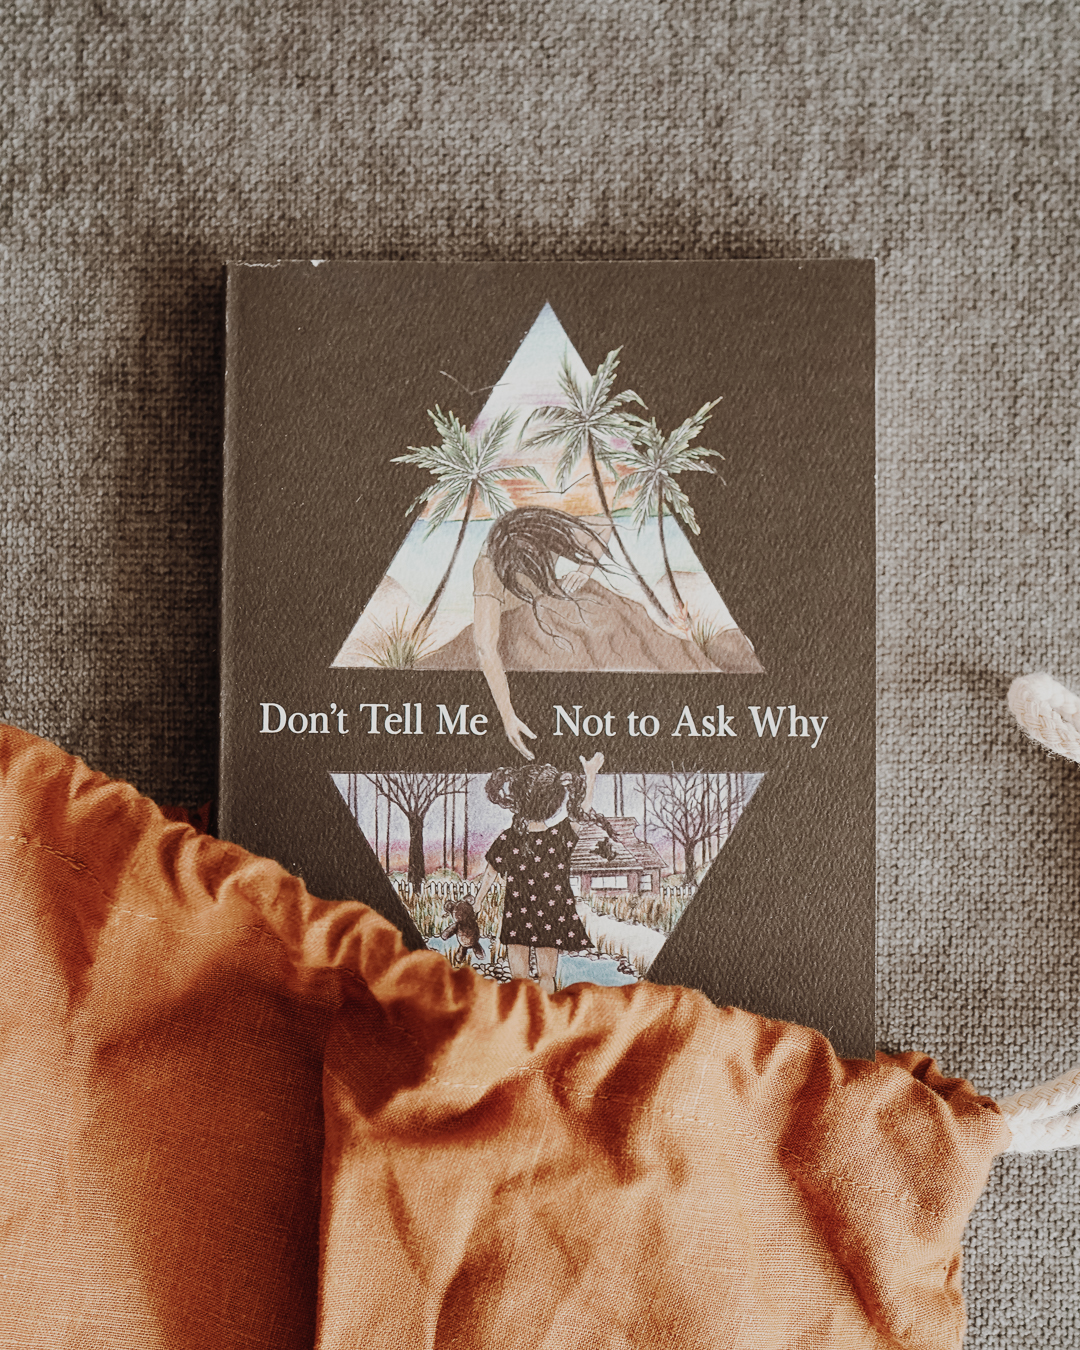 Don't Tell Me Not to Ask Why , Samantha King Holmes's second solo poetry collection following her bestselling  Born to Love, Cursed to Feel , is a mirror that reflects our honest truths. Holmes's poems are like little stories, hooking readers while navigating issues like body image, family relationships, loneliness, failed relationships, and finding belonging.  Don't Tell Me Not to Ask Why  is a call to introspection, a demand for honesty, and an affirmation of second chances.